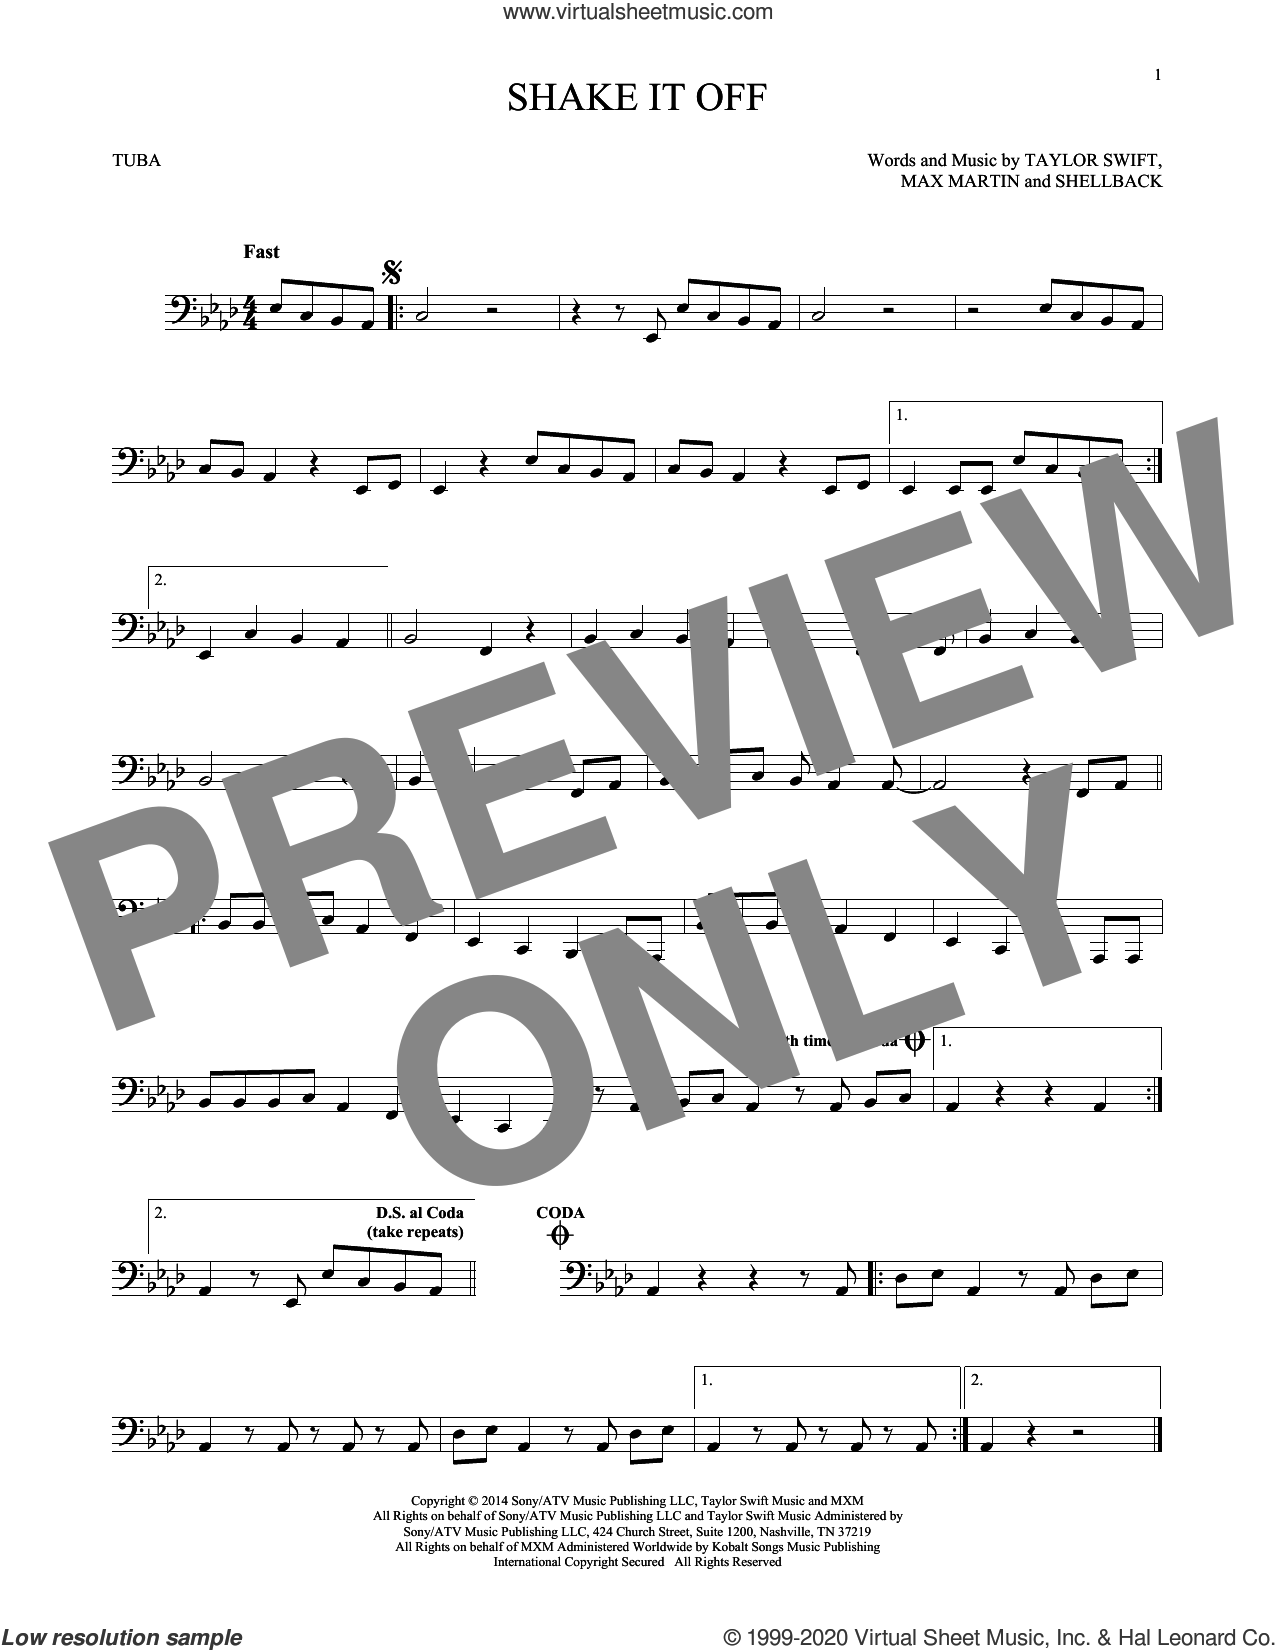 Shake It Off sheet music for Tuba Solo (tuba) by Taylor Swift, Johan Schuster, Max Martin and Shellback, intermediate skill level